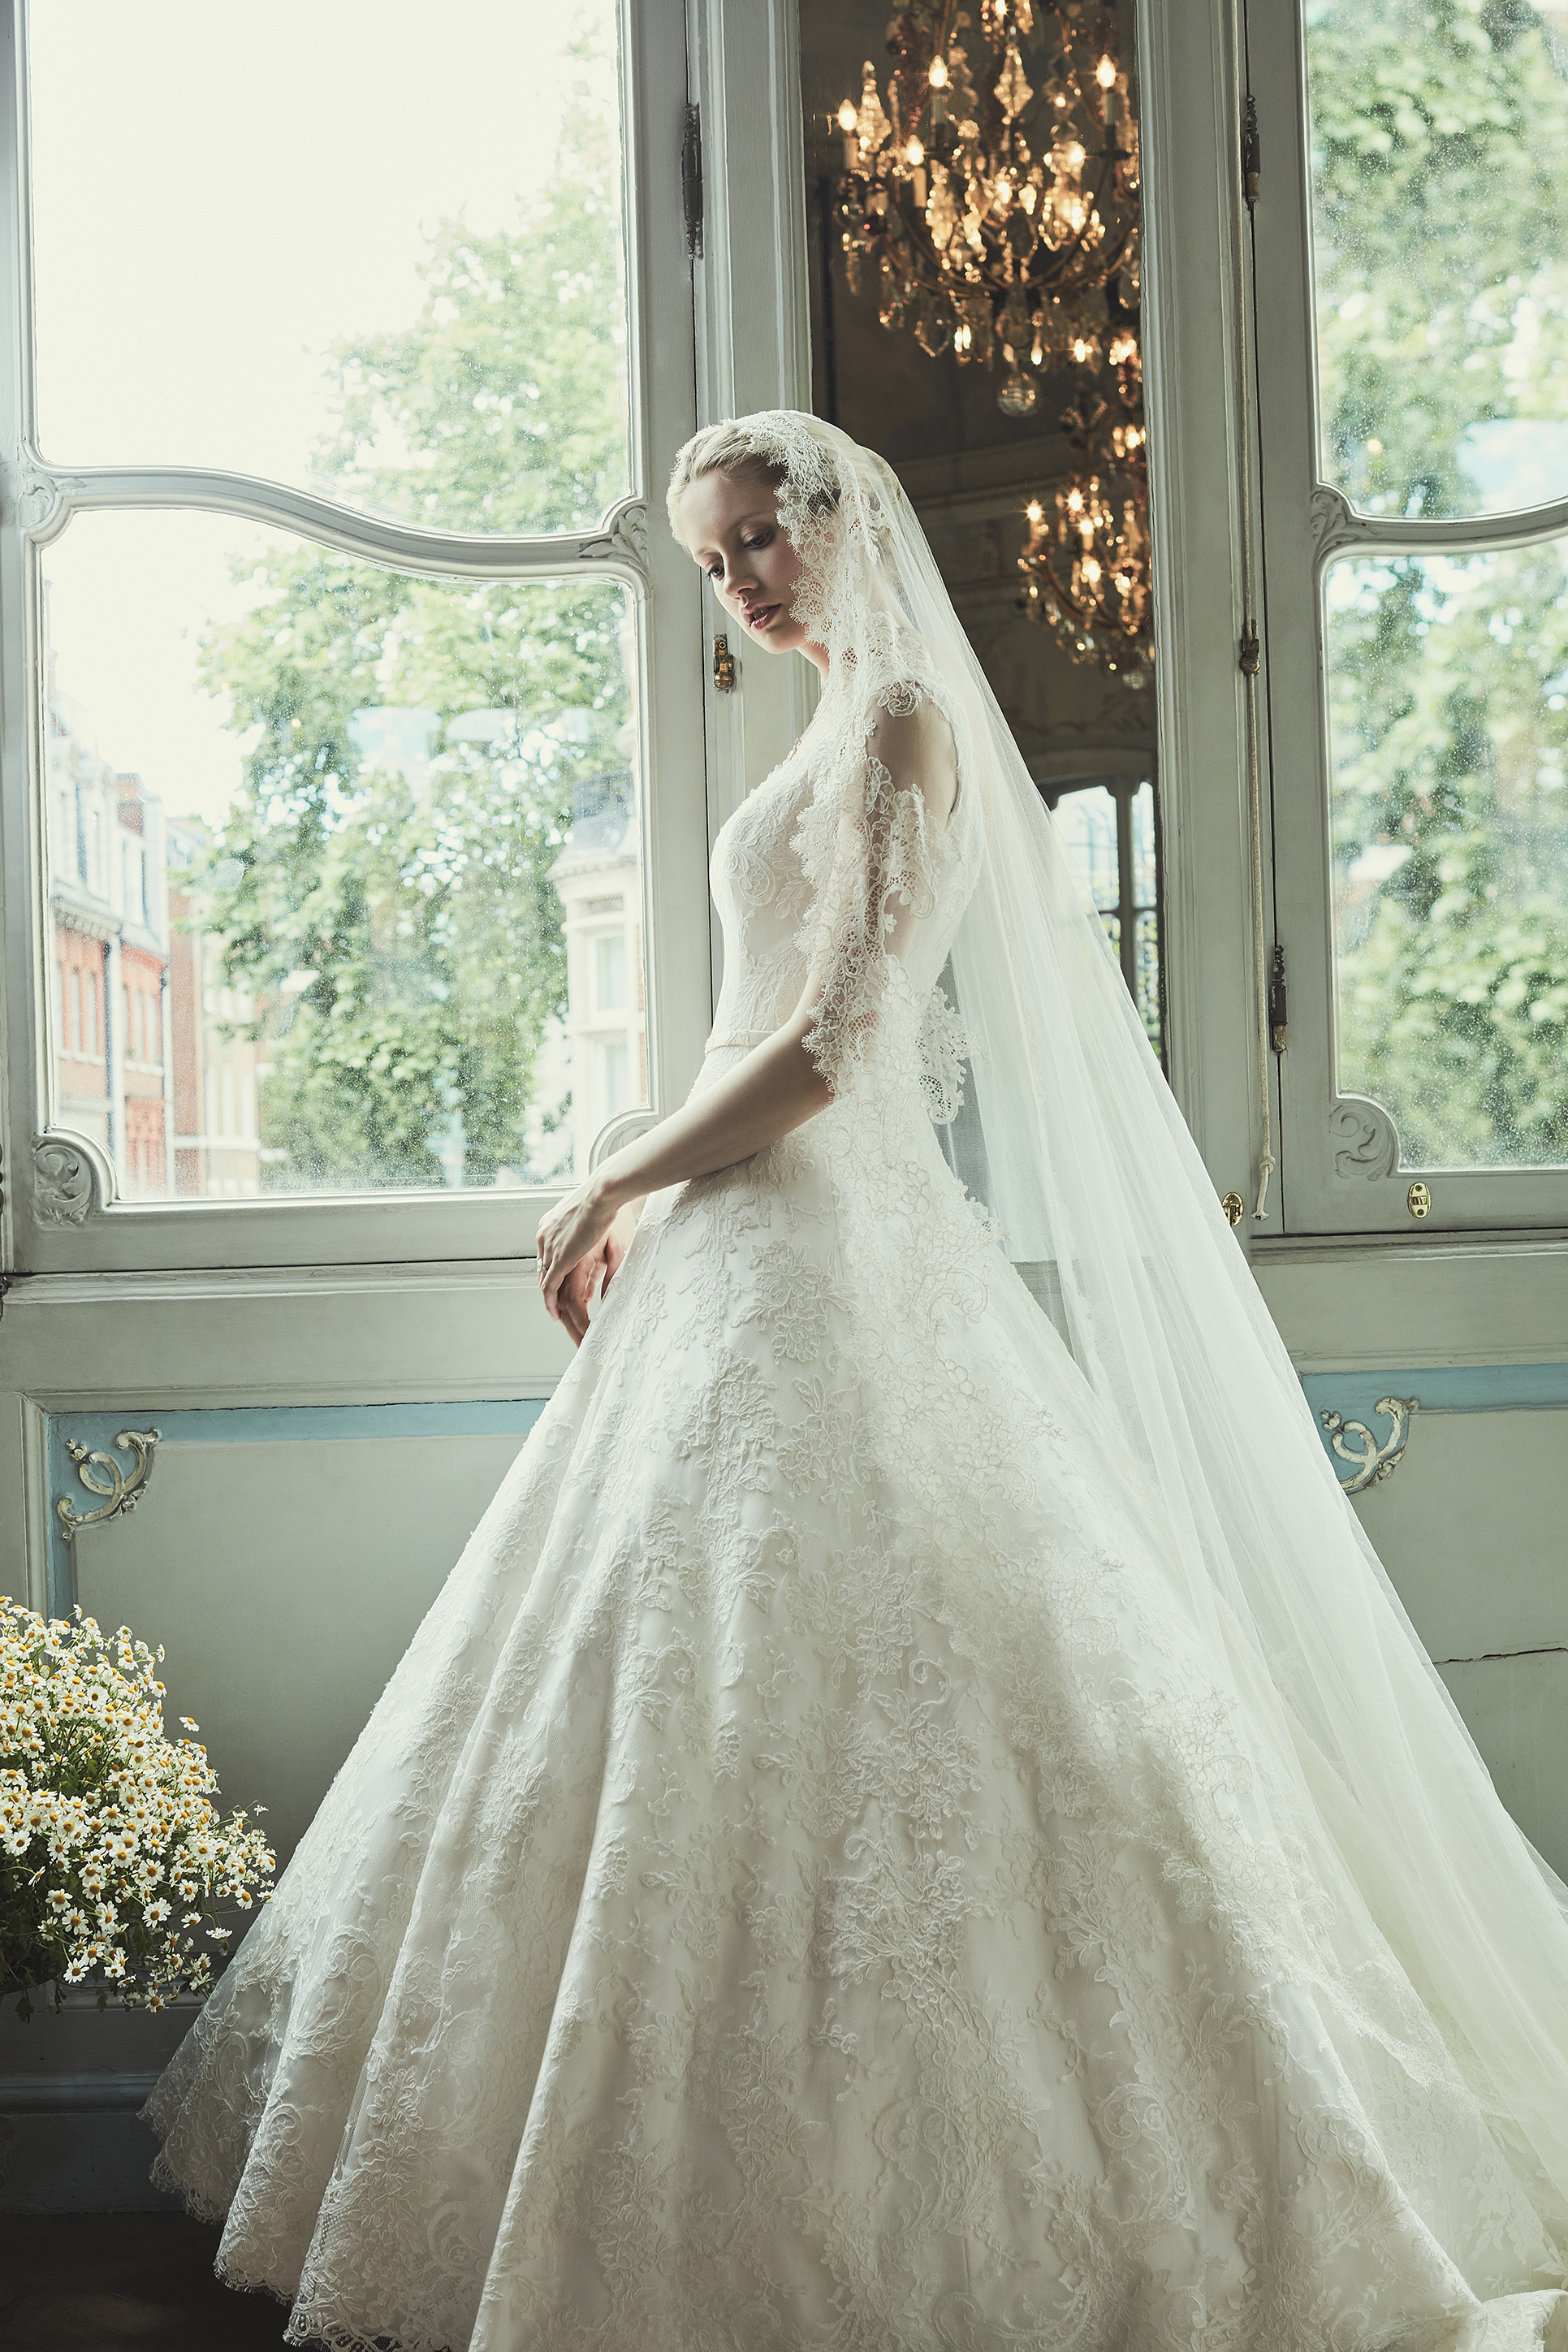 Phillipa Lepley | Wedding Dress and Accessories | Bridebook